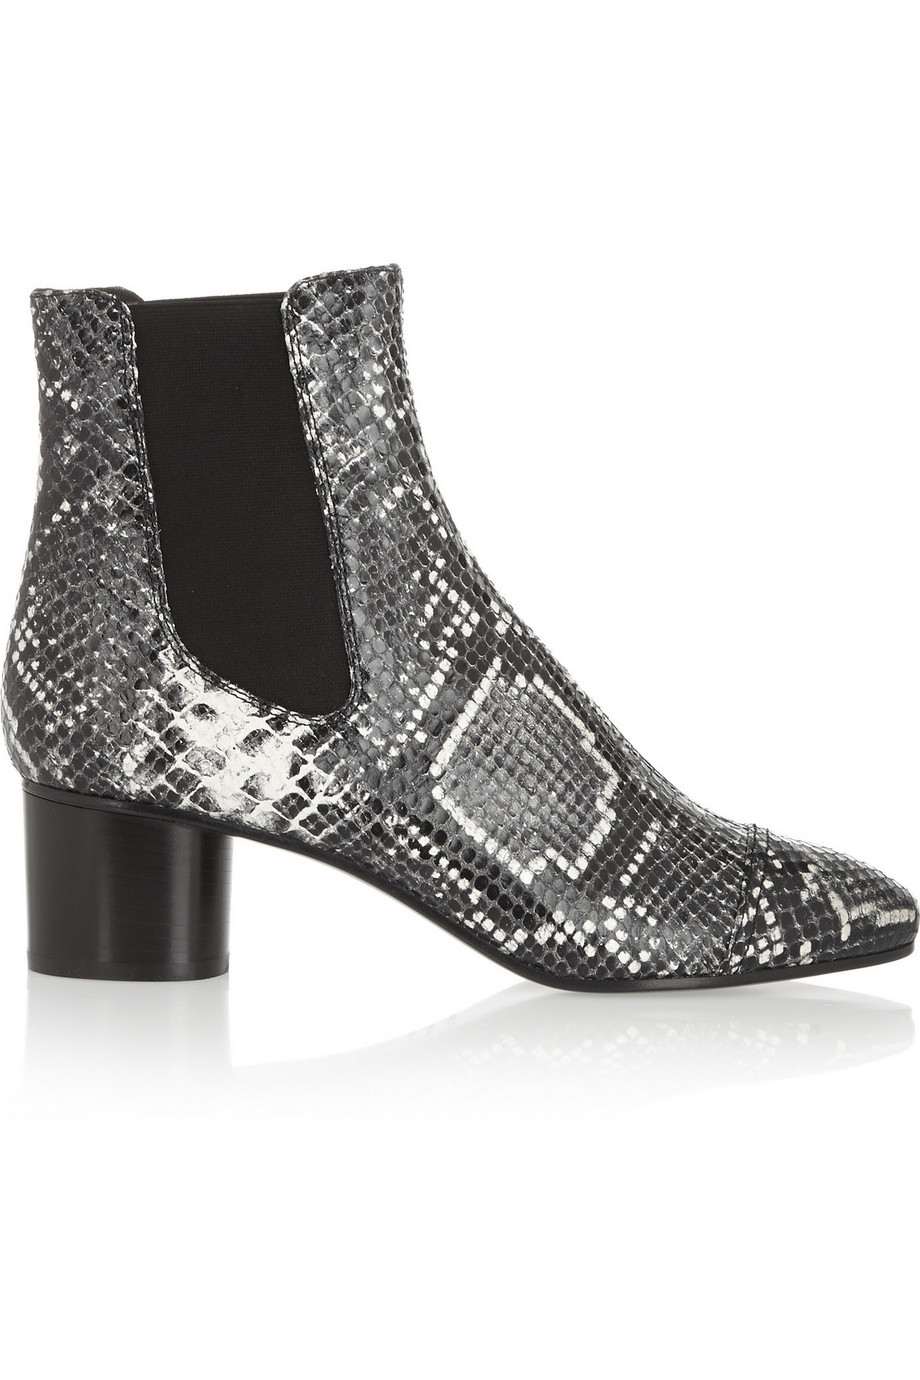 Isabel Marant Danae Snake-Effect Leather Ankle Boots, Gray/Snake Print, Women's US Size: 3.5, Size: 35